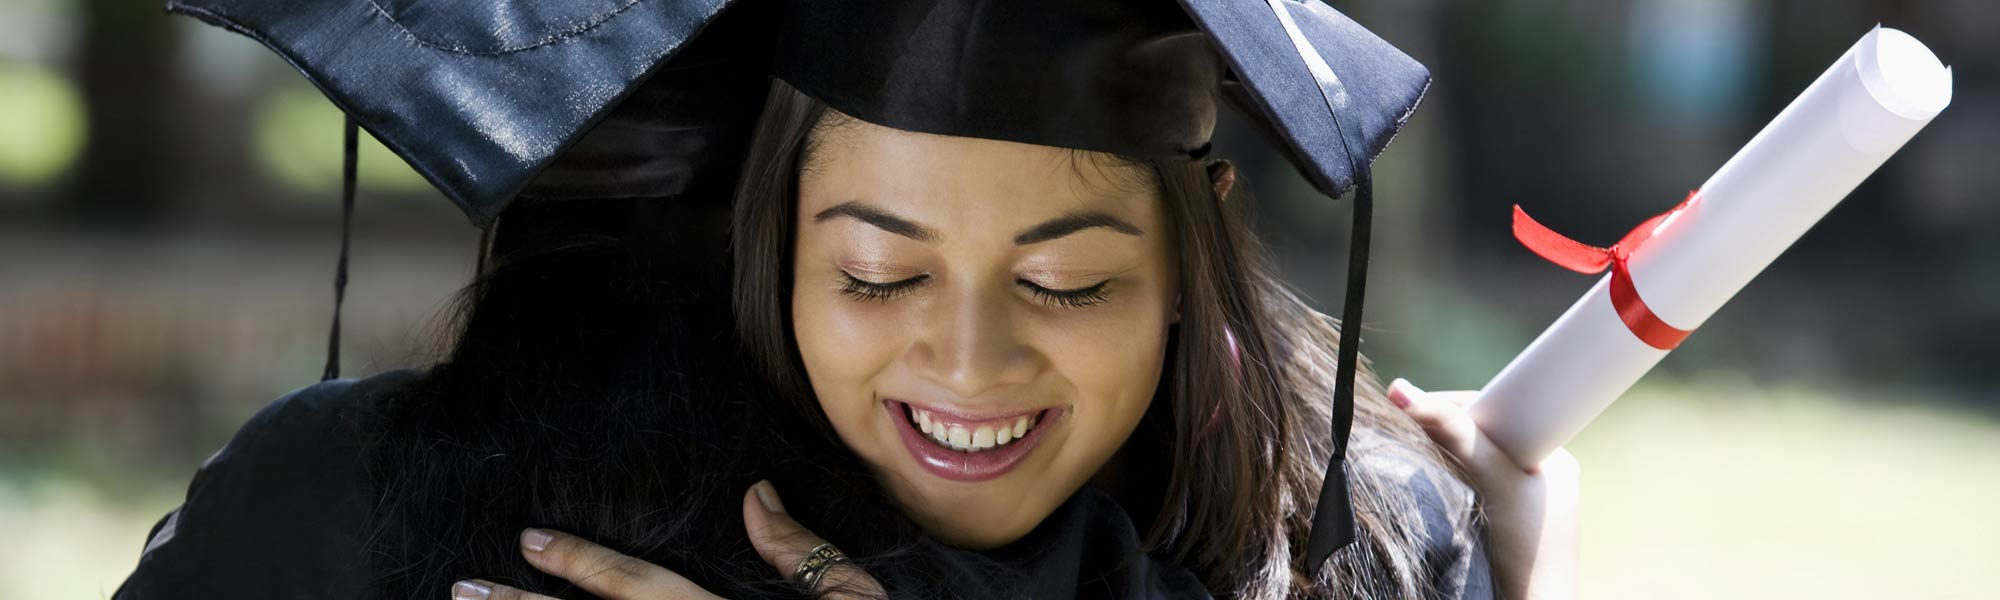 young woman hugging on graduation today, with graduation uniform and certificate in her hand